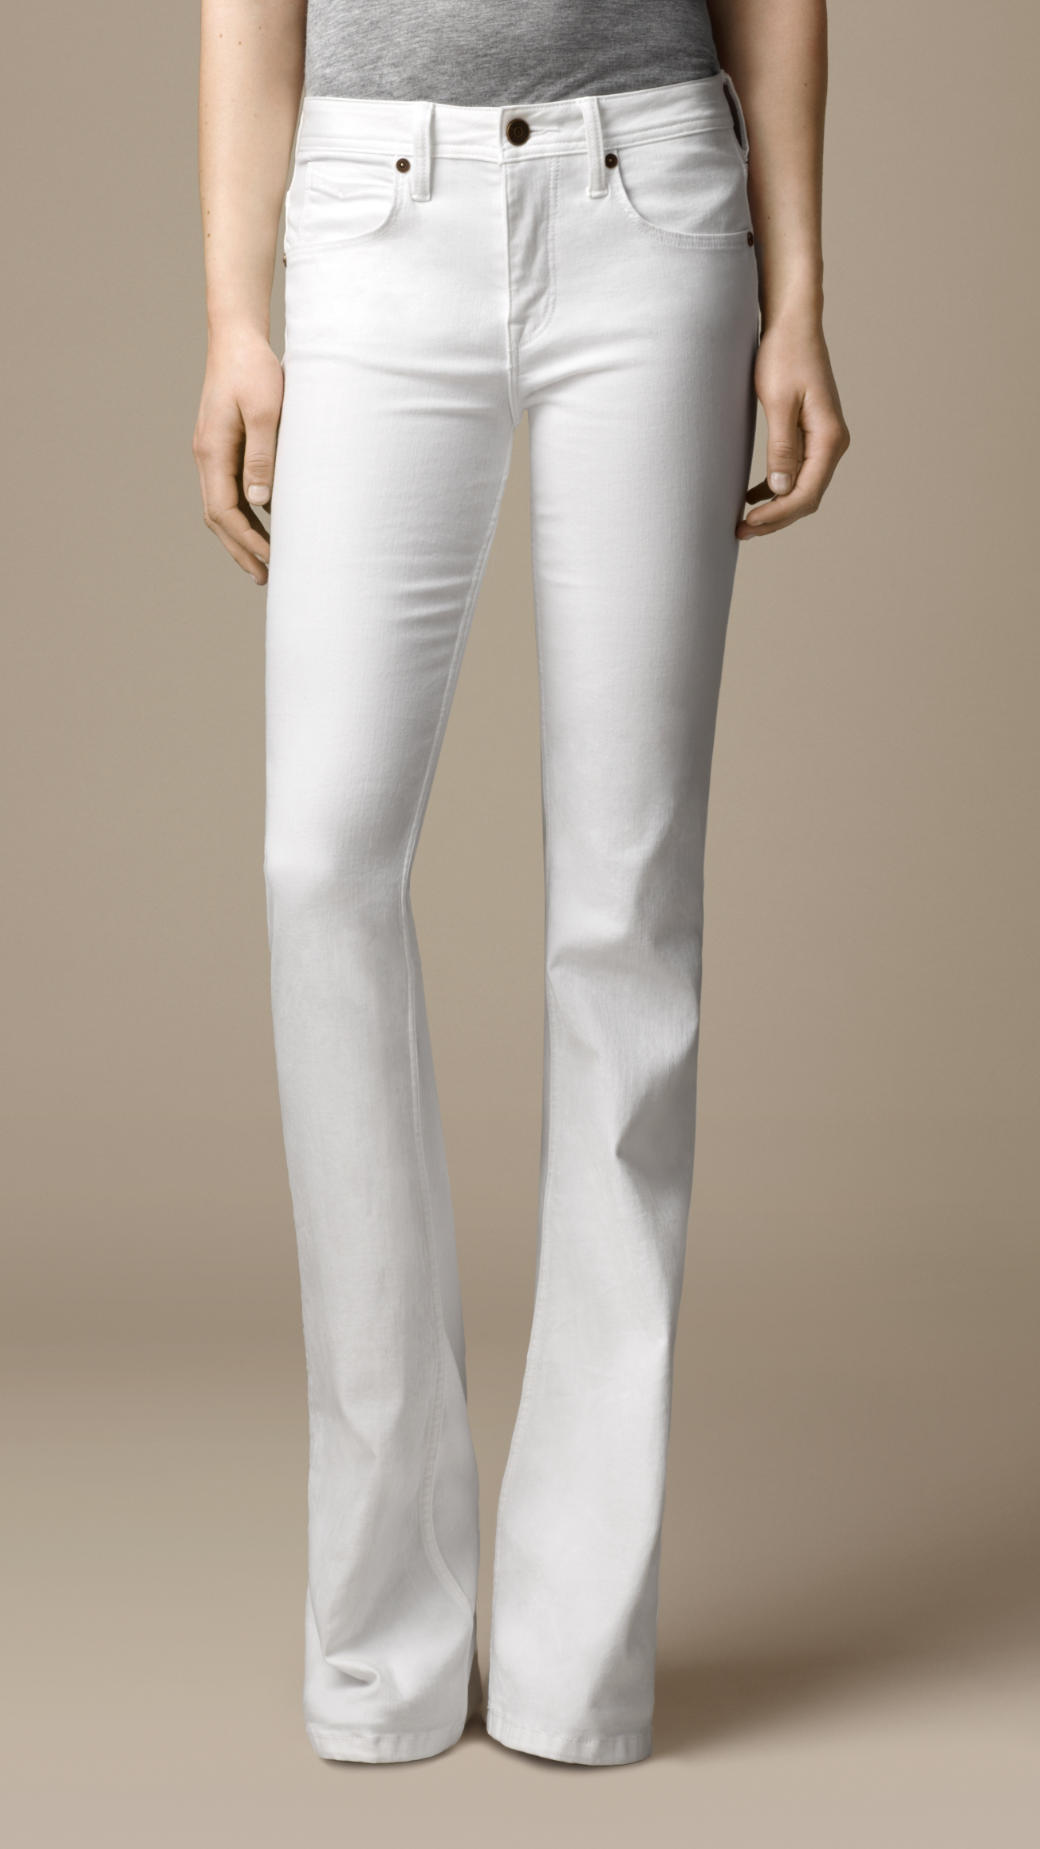 Free shipping and returns on Women's White Bootcut Jeans at topinsurances.ga